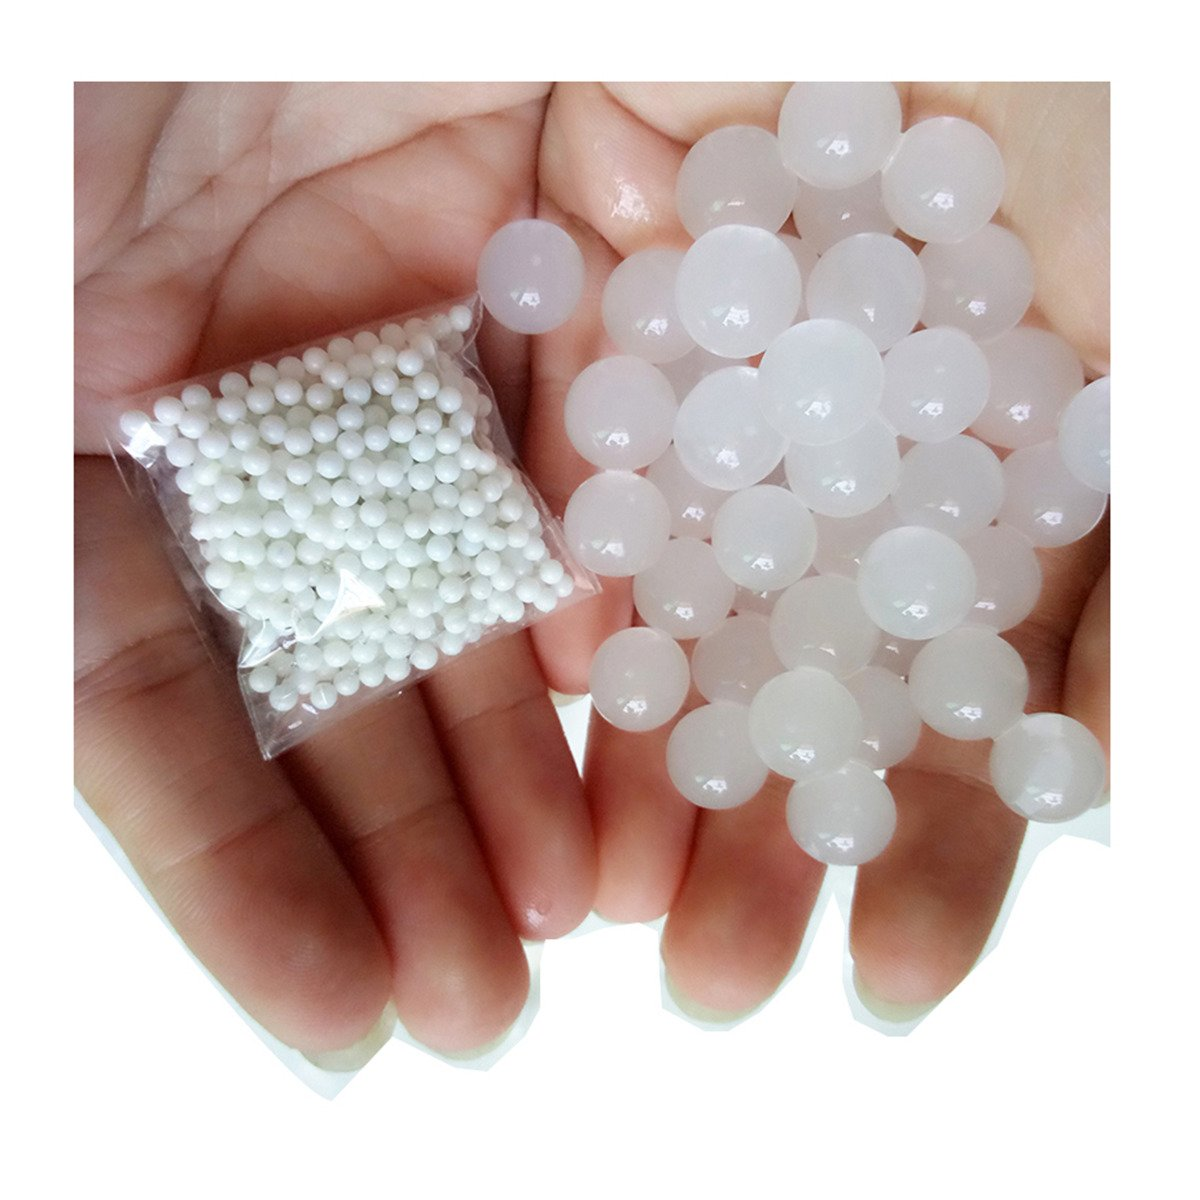 LKXHarleya 5000pcs Non-toxic Water Beads Reusable Growing Jelly Gel Balls for Vases,Kids Sensory Toys,Decor,White